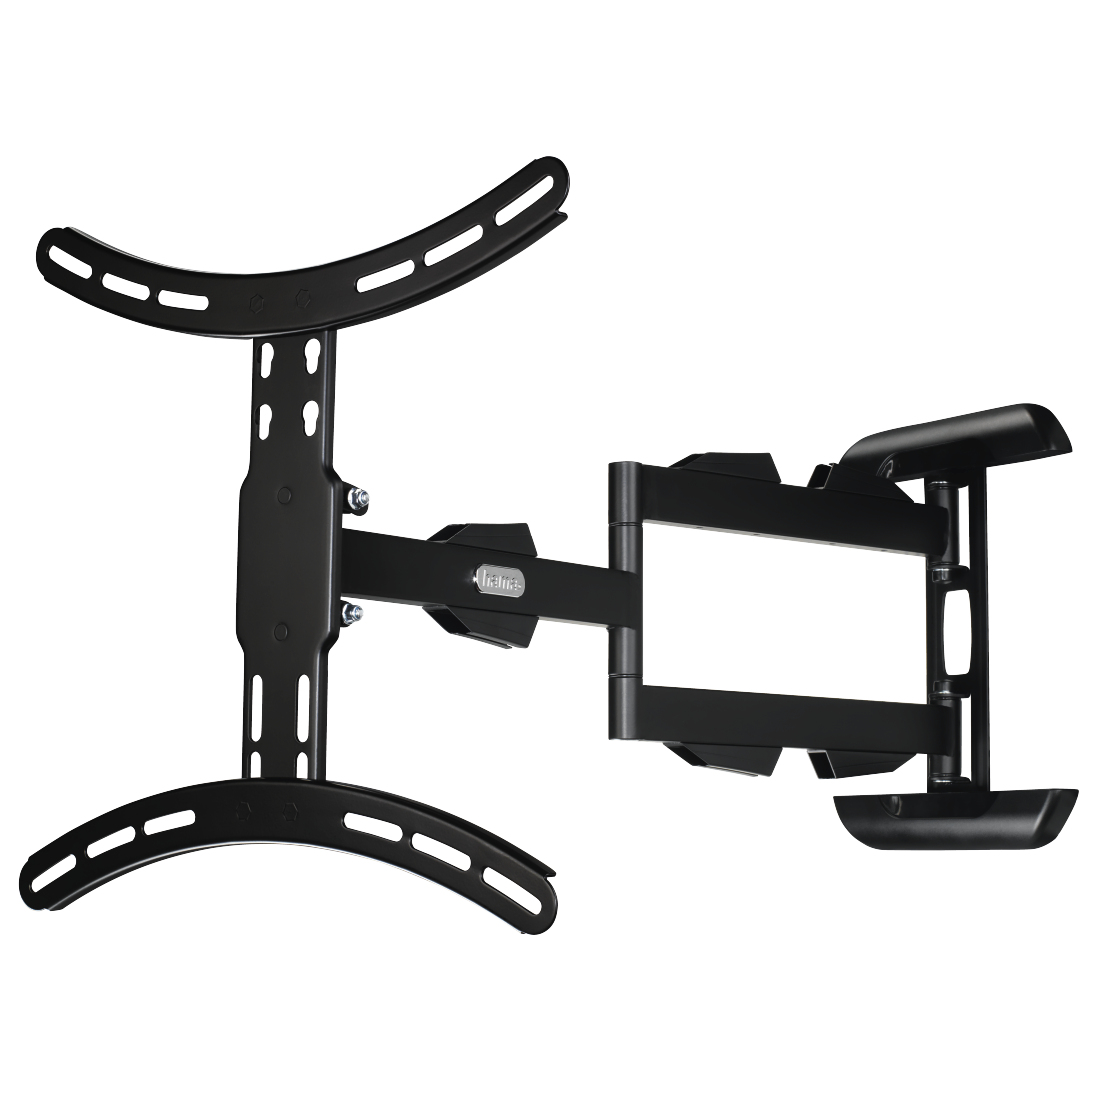 "abx High-Res Image - Hama, FULLMOTION TV Wall Bracket, 3 Stars, 165 cm (65""), 2 arms, ultra-long"